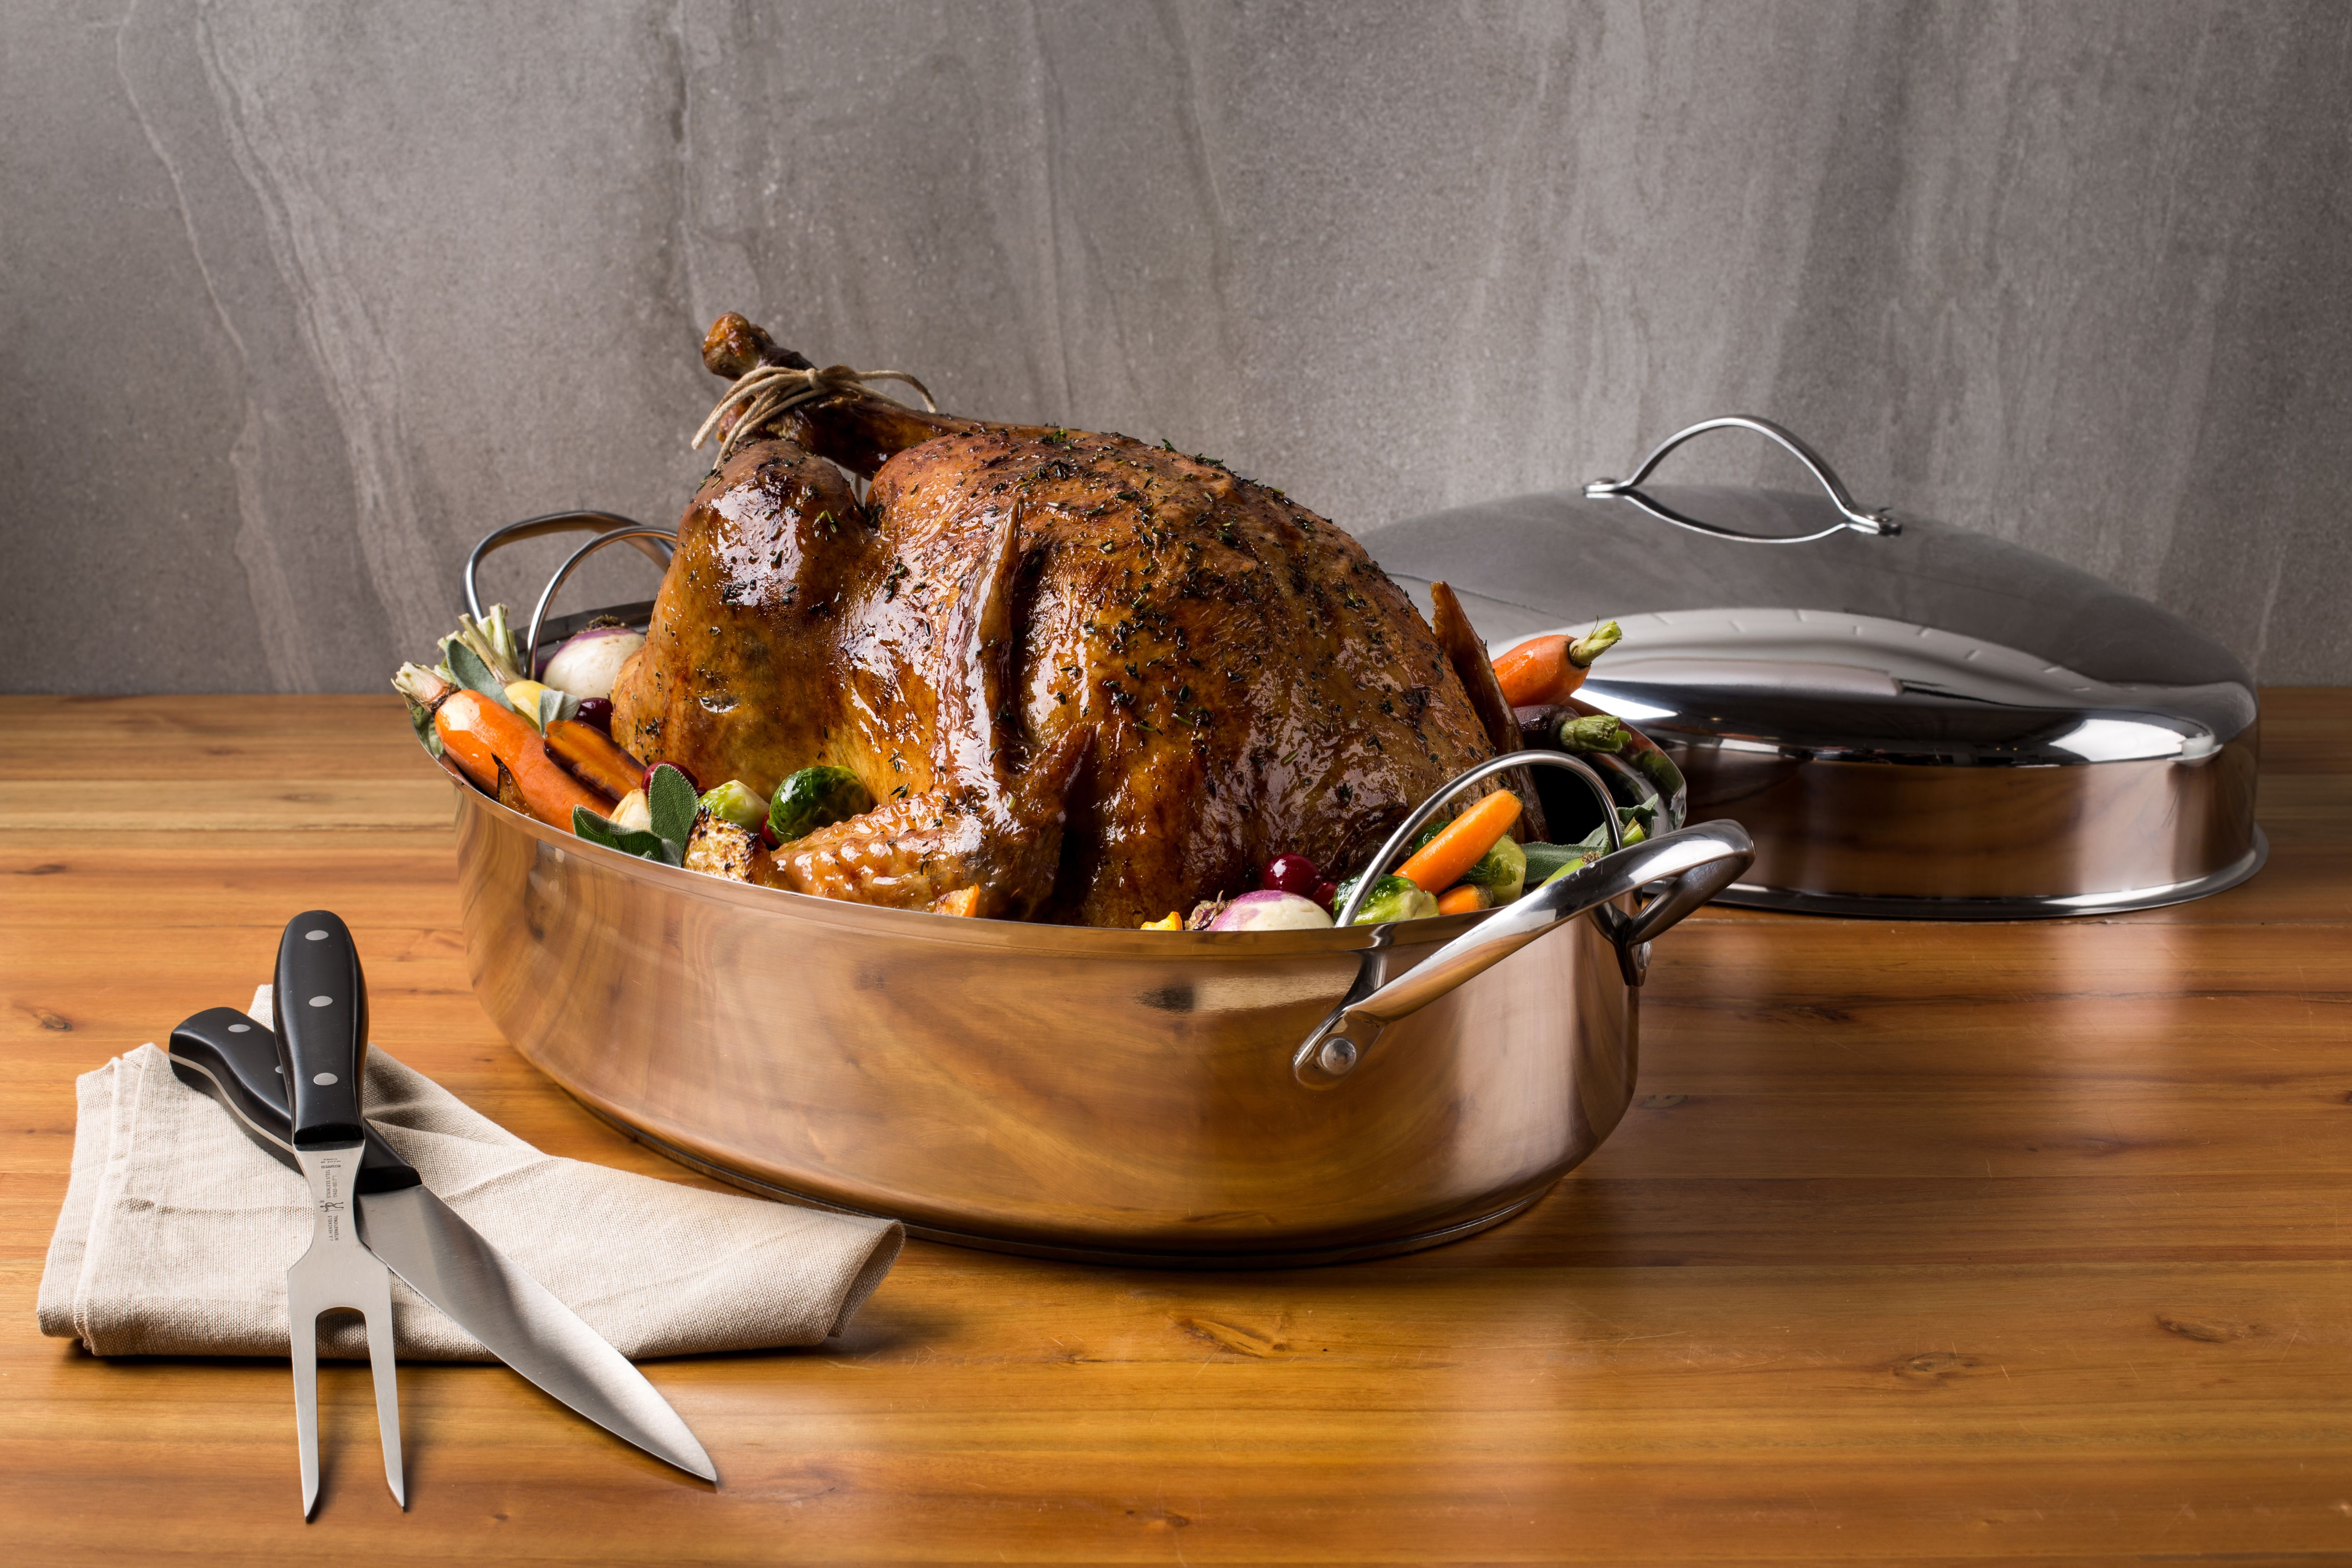 stainless steel hi-dome roaster with prepared turkey inside